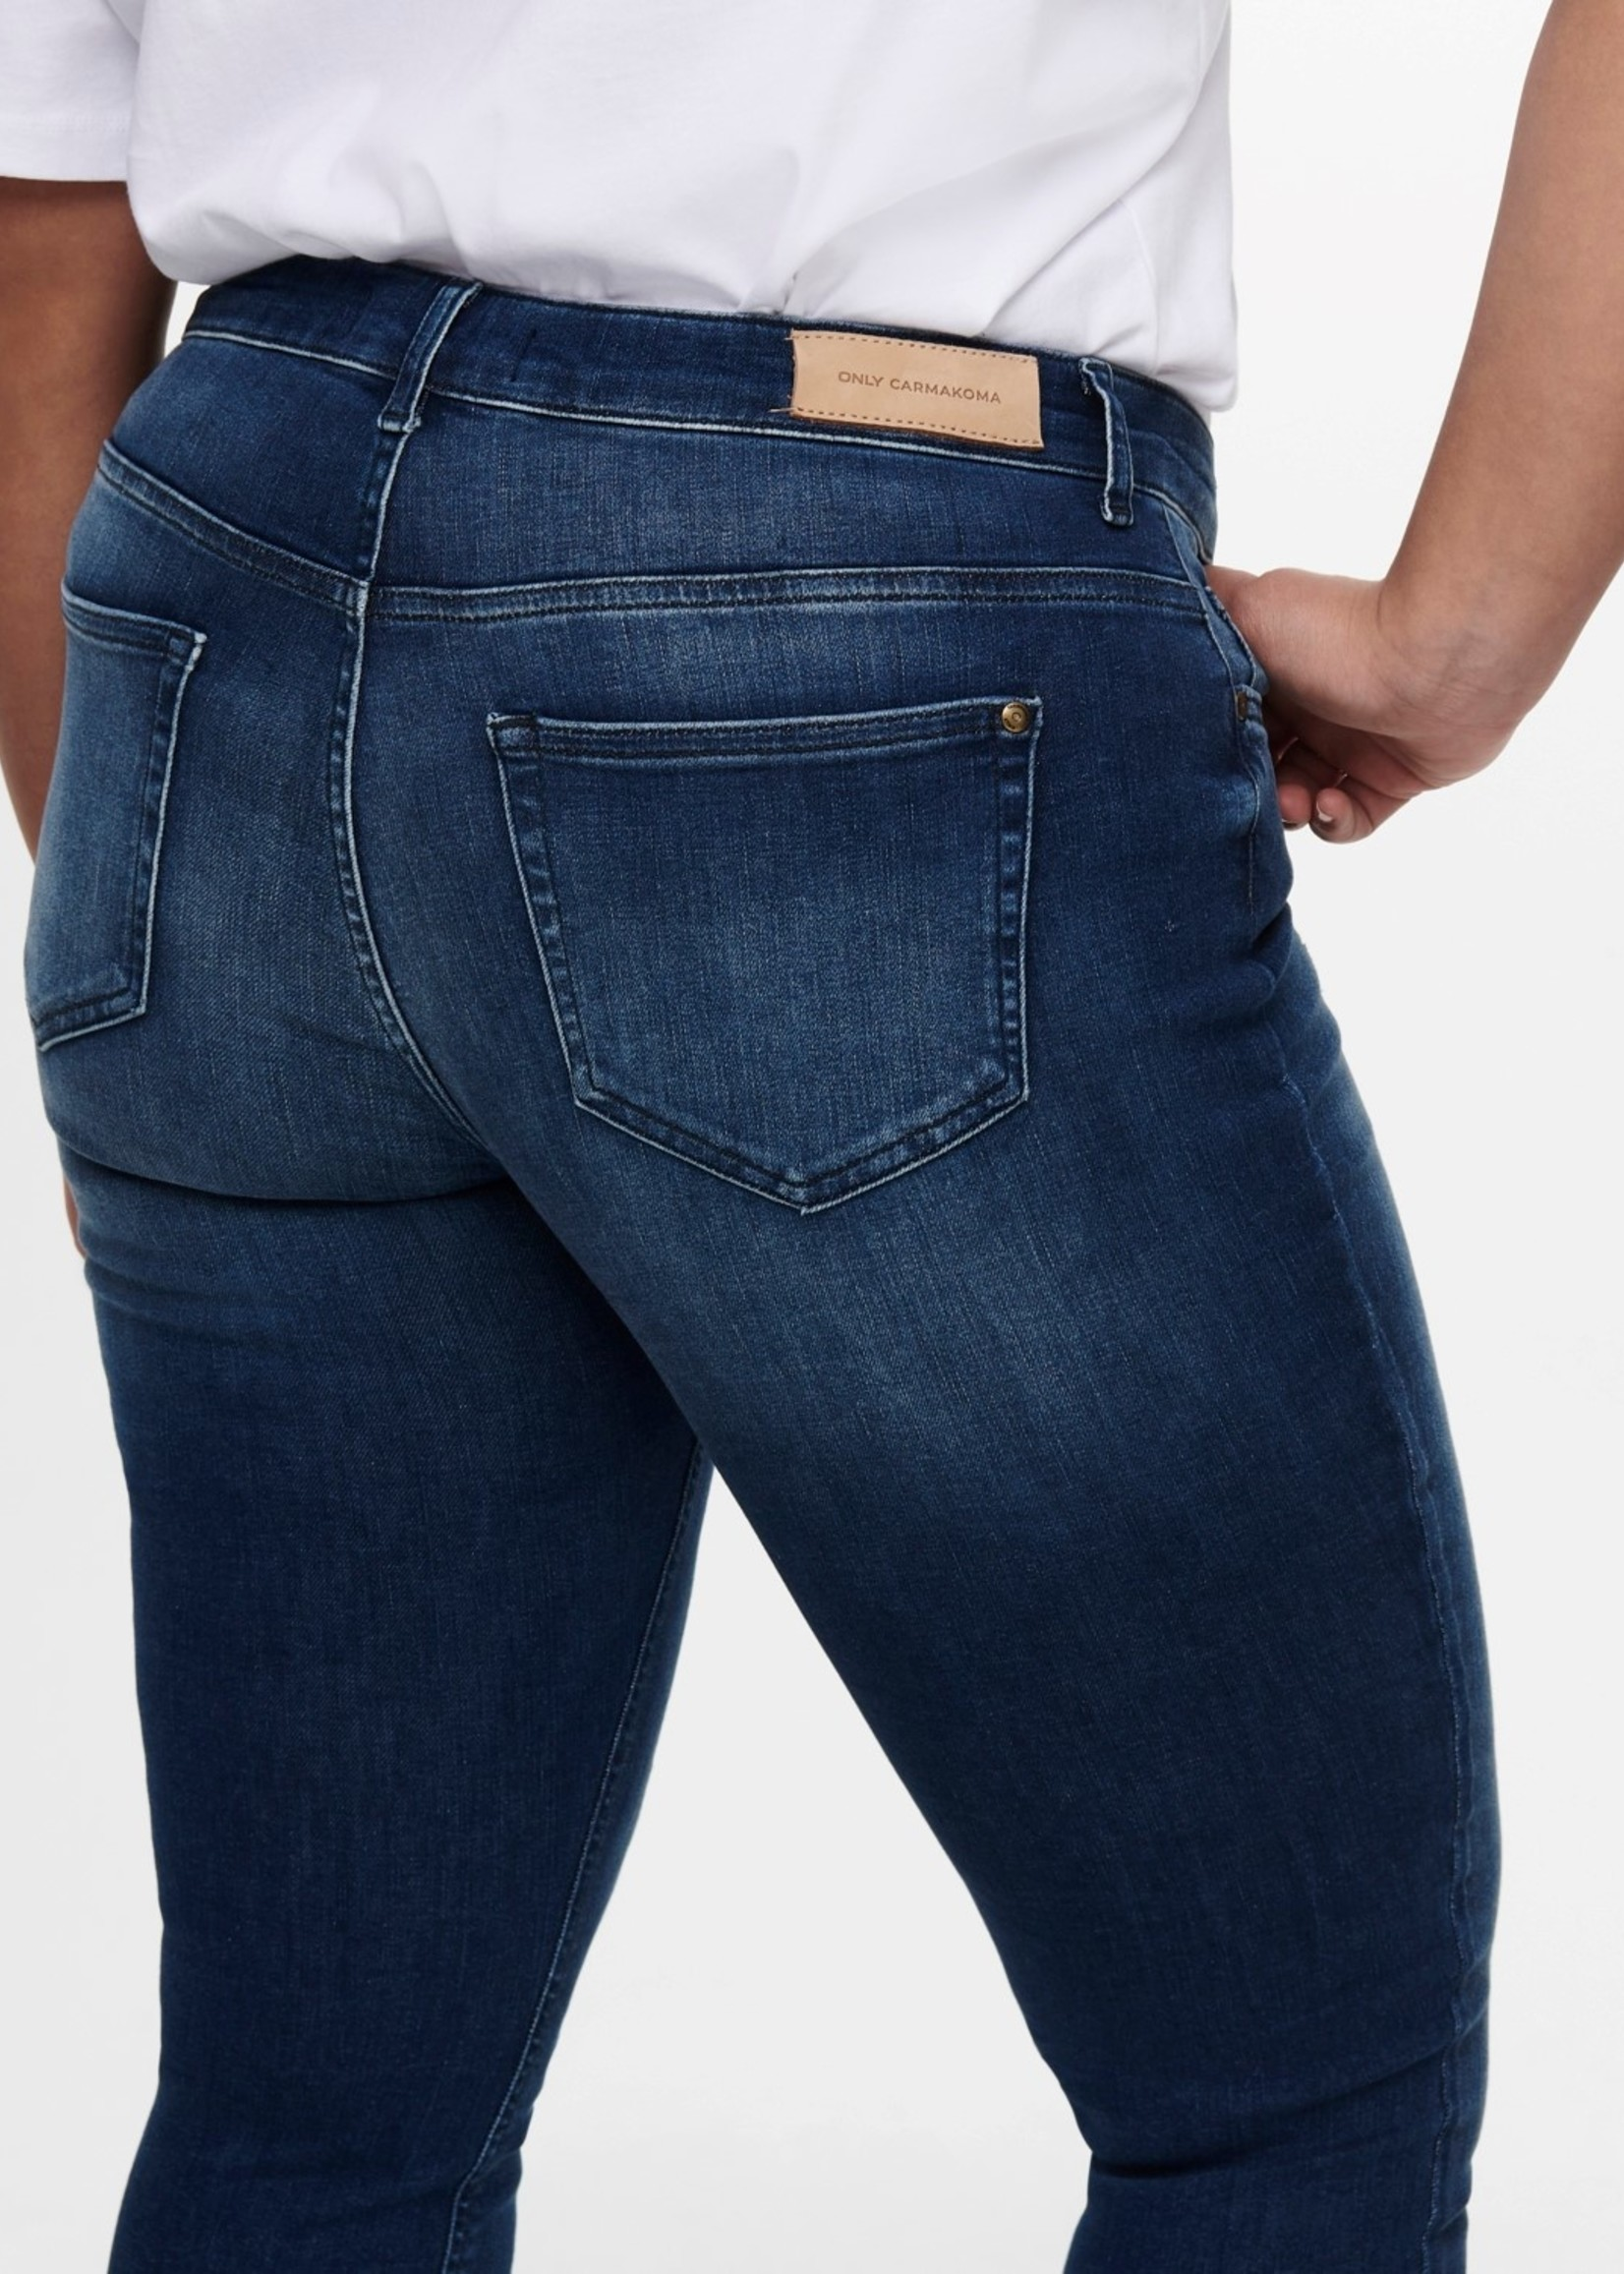 Only Carmakoma Only Carmakoma Willy Destroyed Jeans